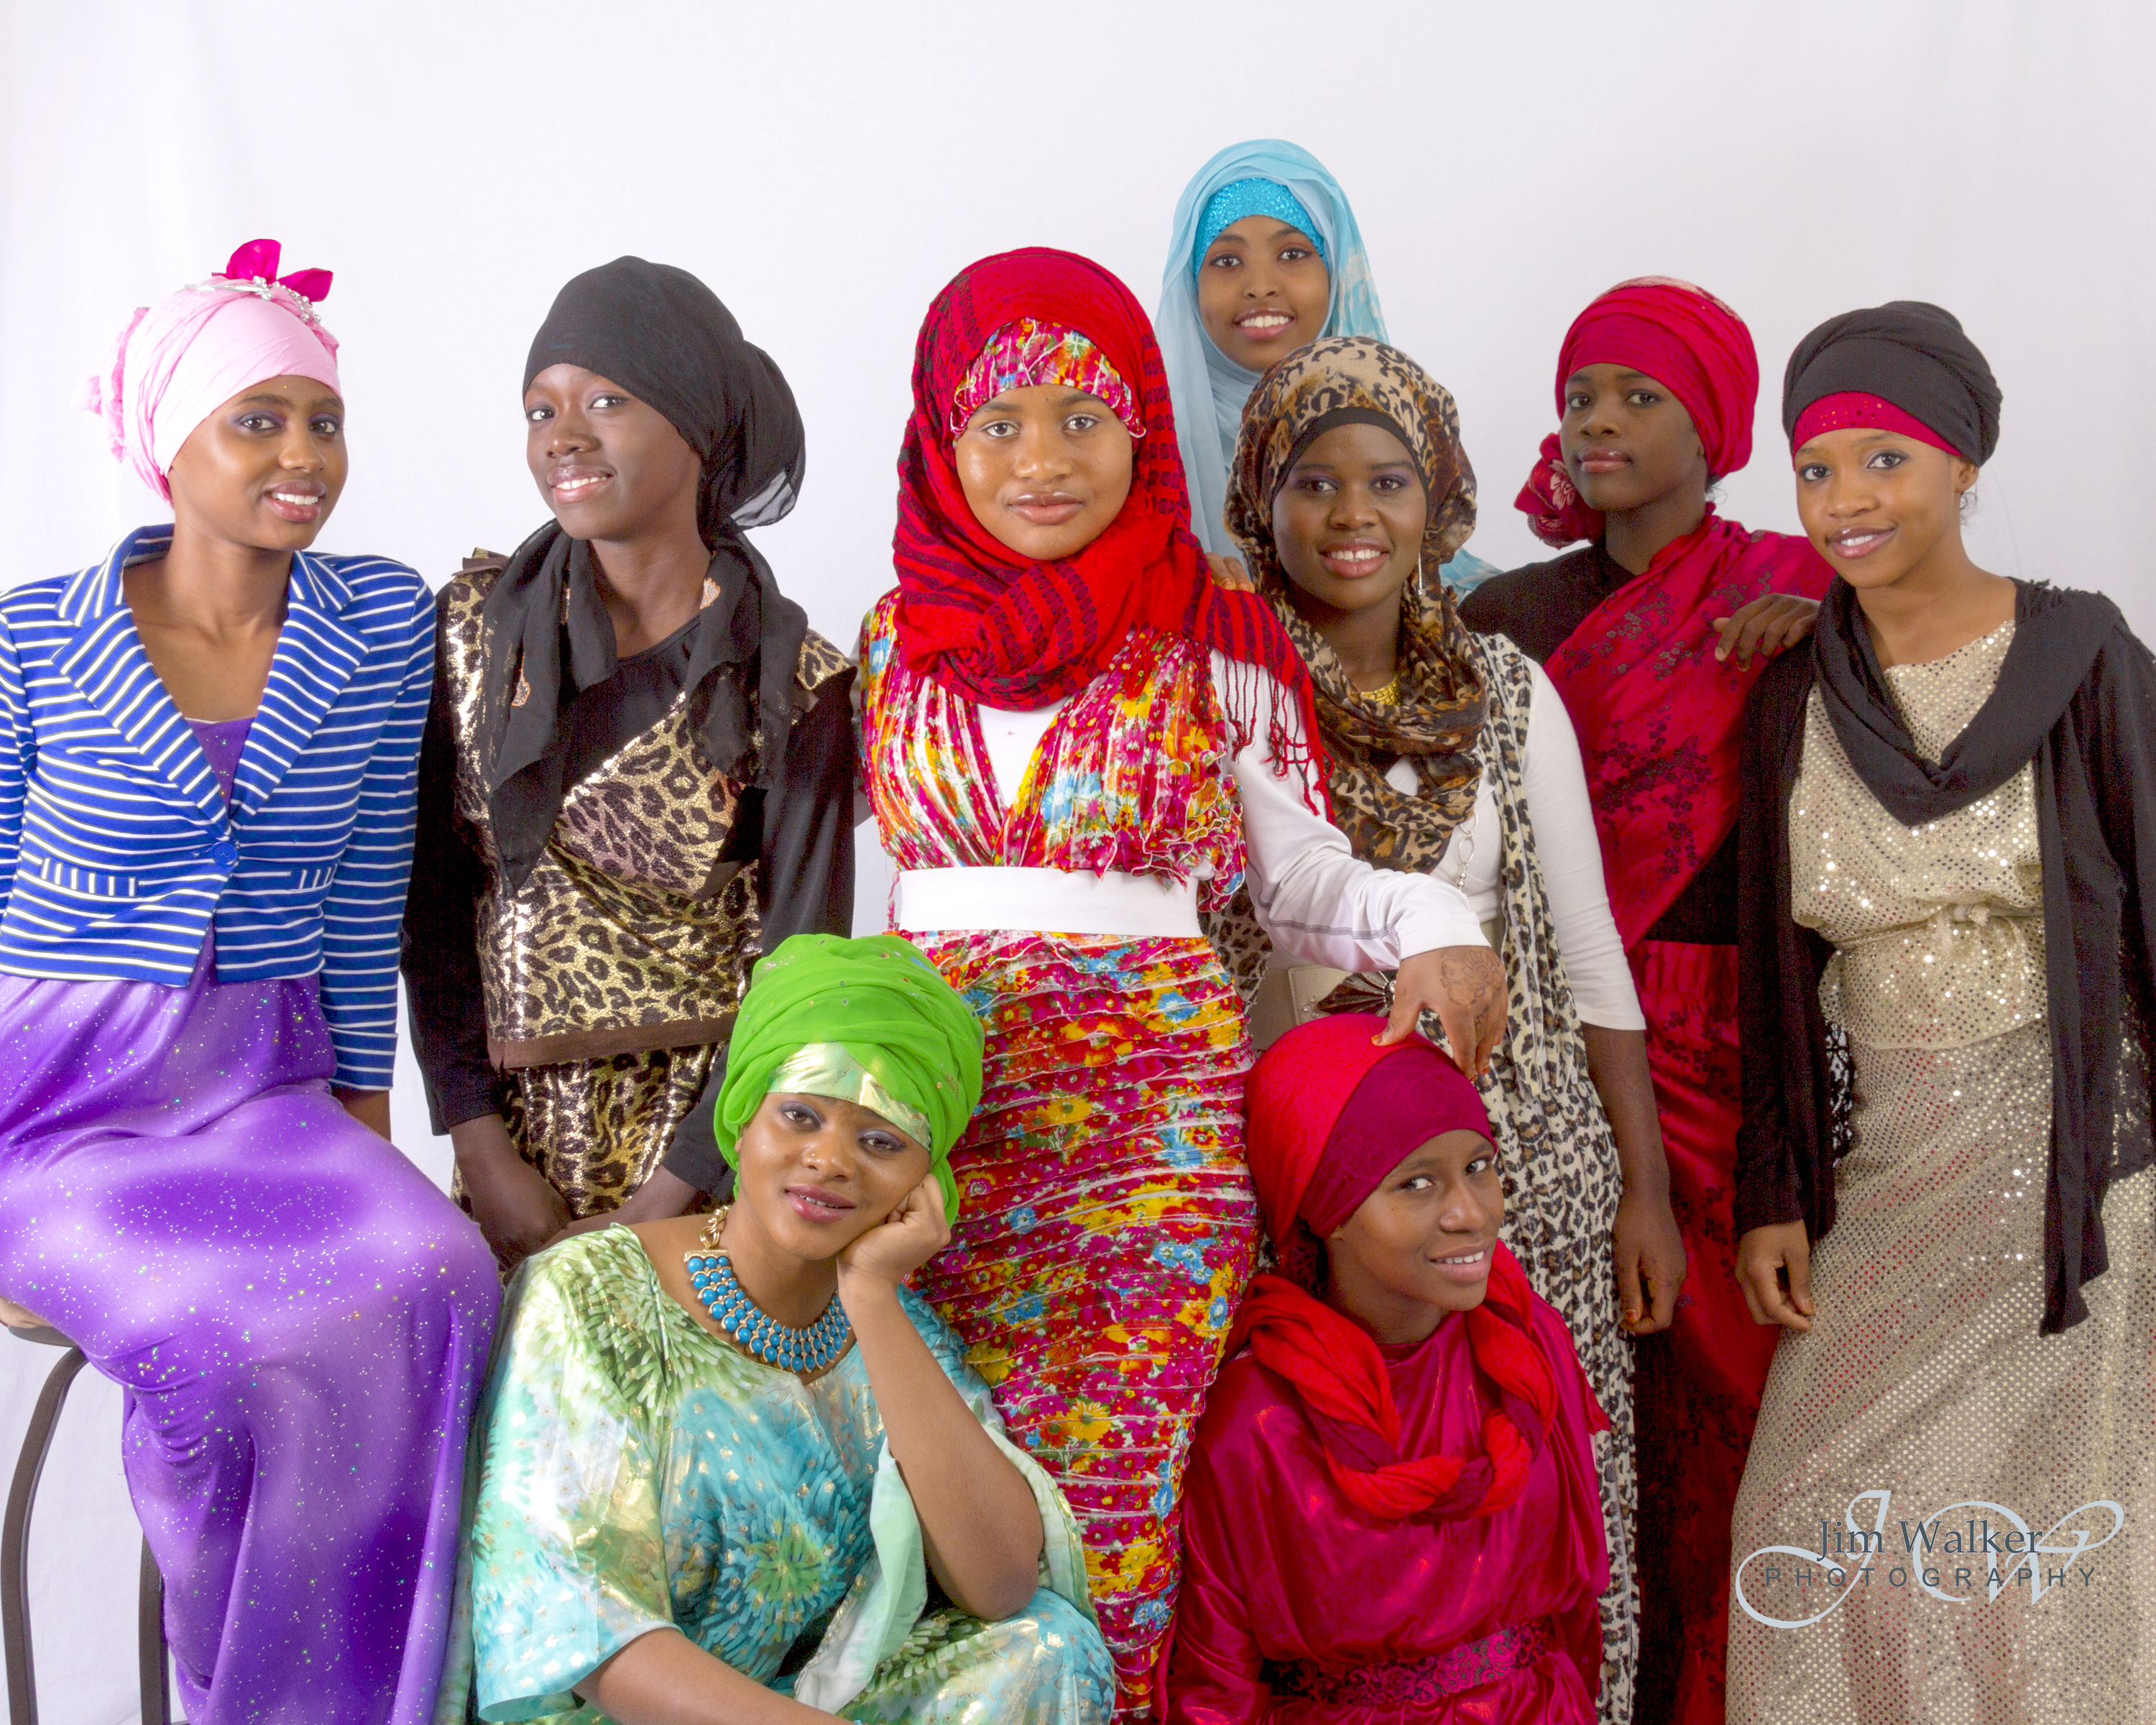 Sahro Hassan (center) surrounded by friends and family modeling her designs.